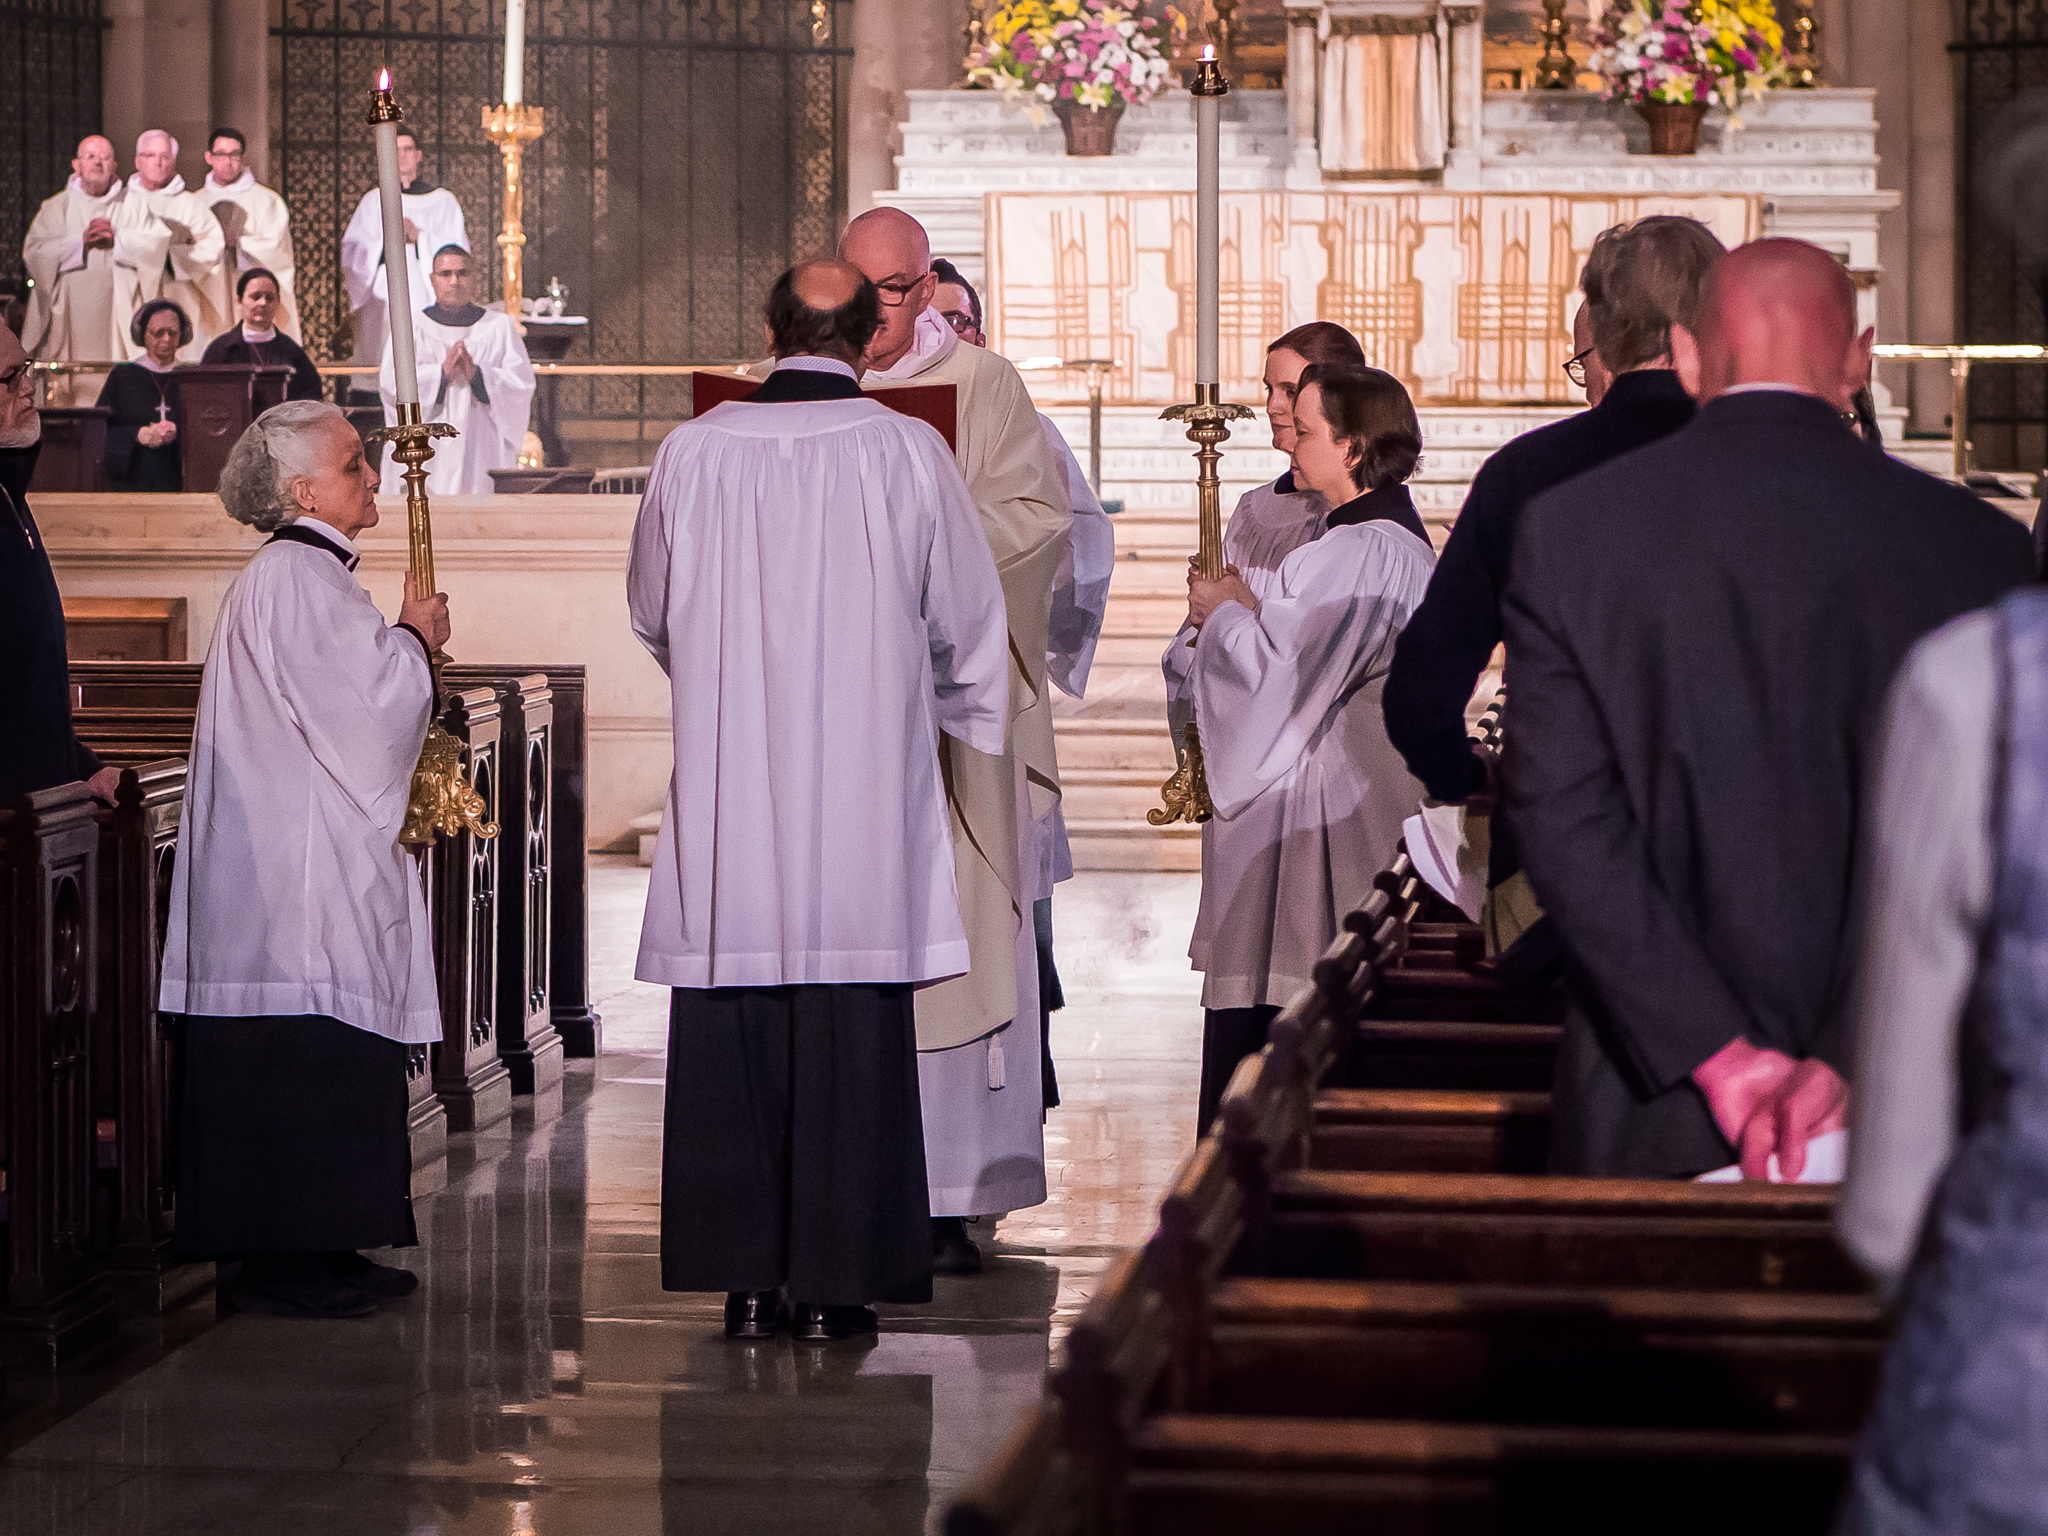 At Solemn Mass the Gospel is proclaimed from the midst of the congregation.  Photo by Ricardo Gomez